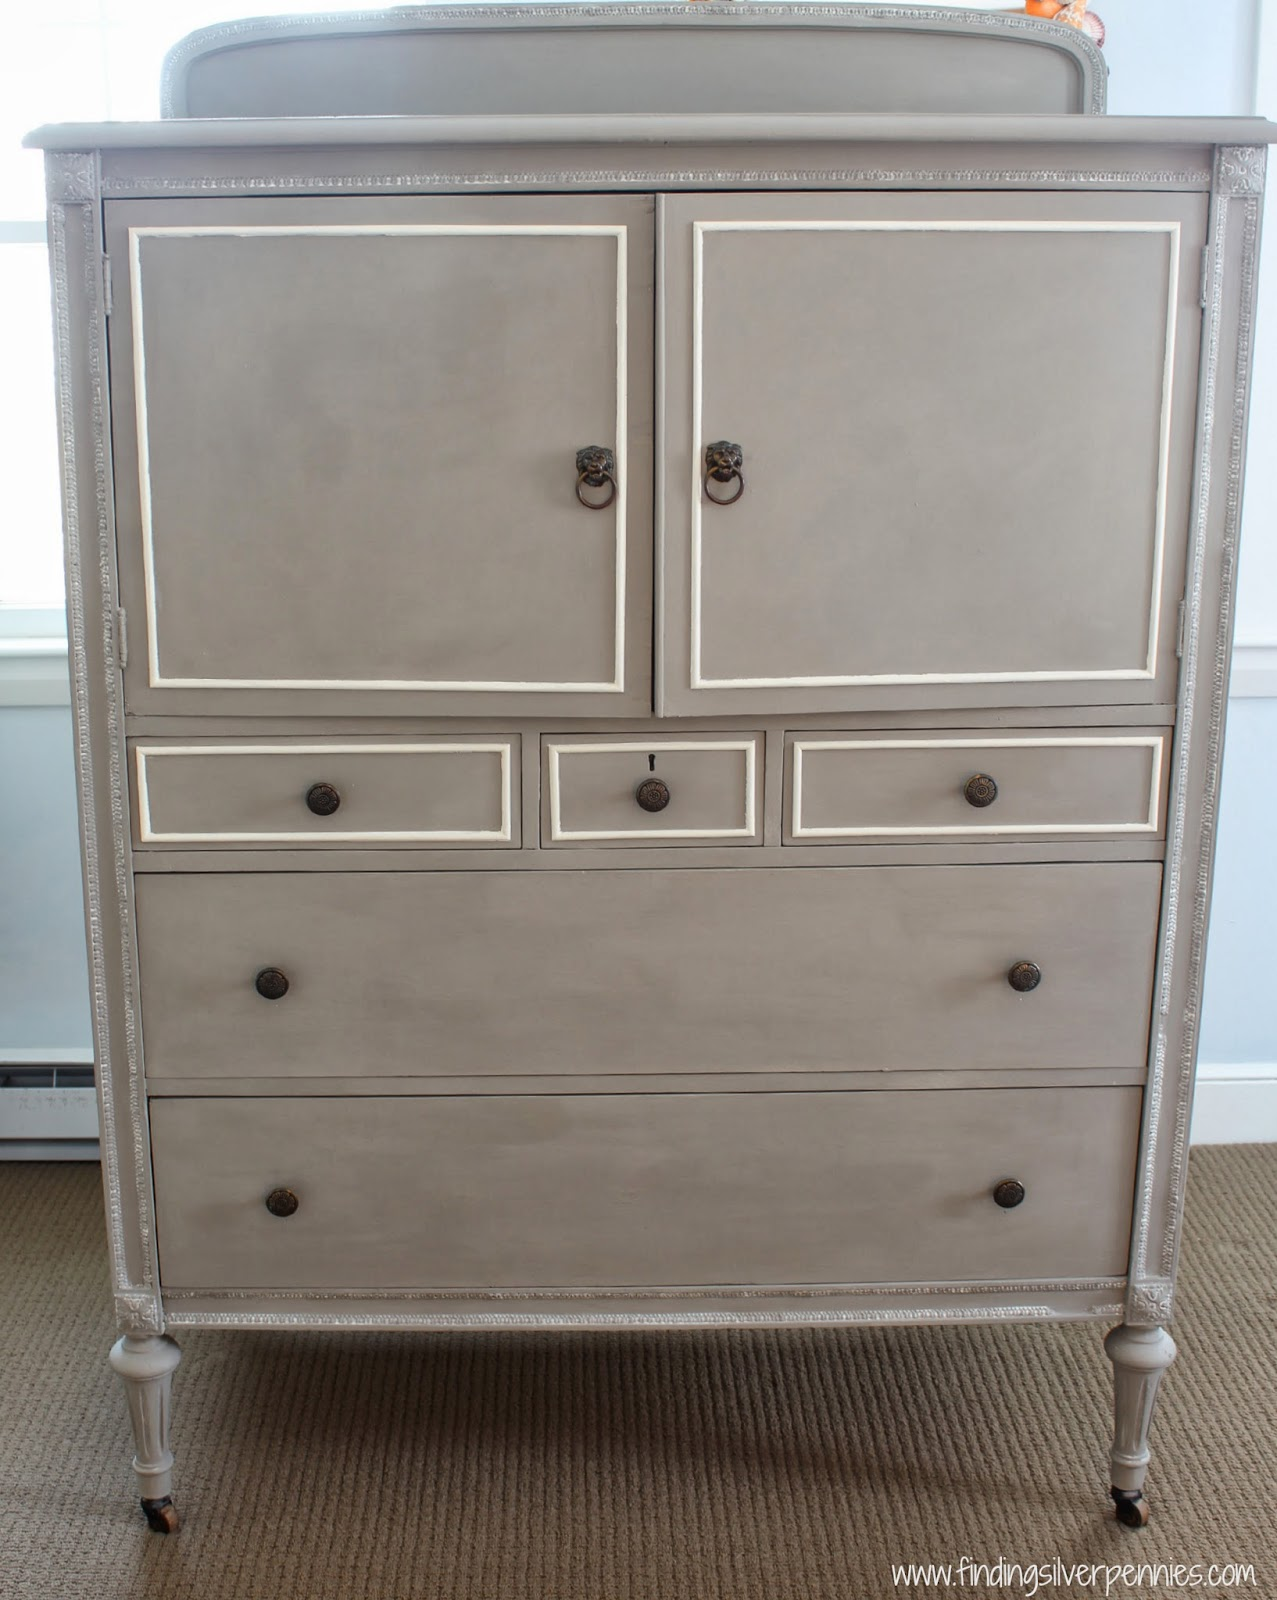 a chalk paint review the clifton armoire finding silver pennies. Black Bedroom Furniture Sets. Home Design Ideas